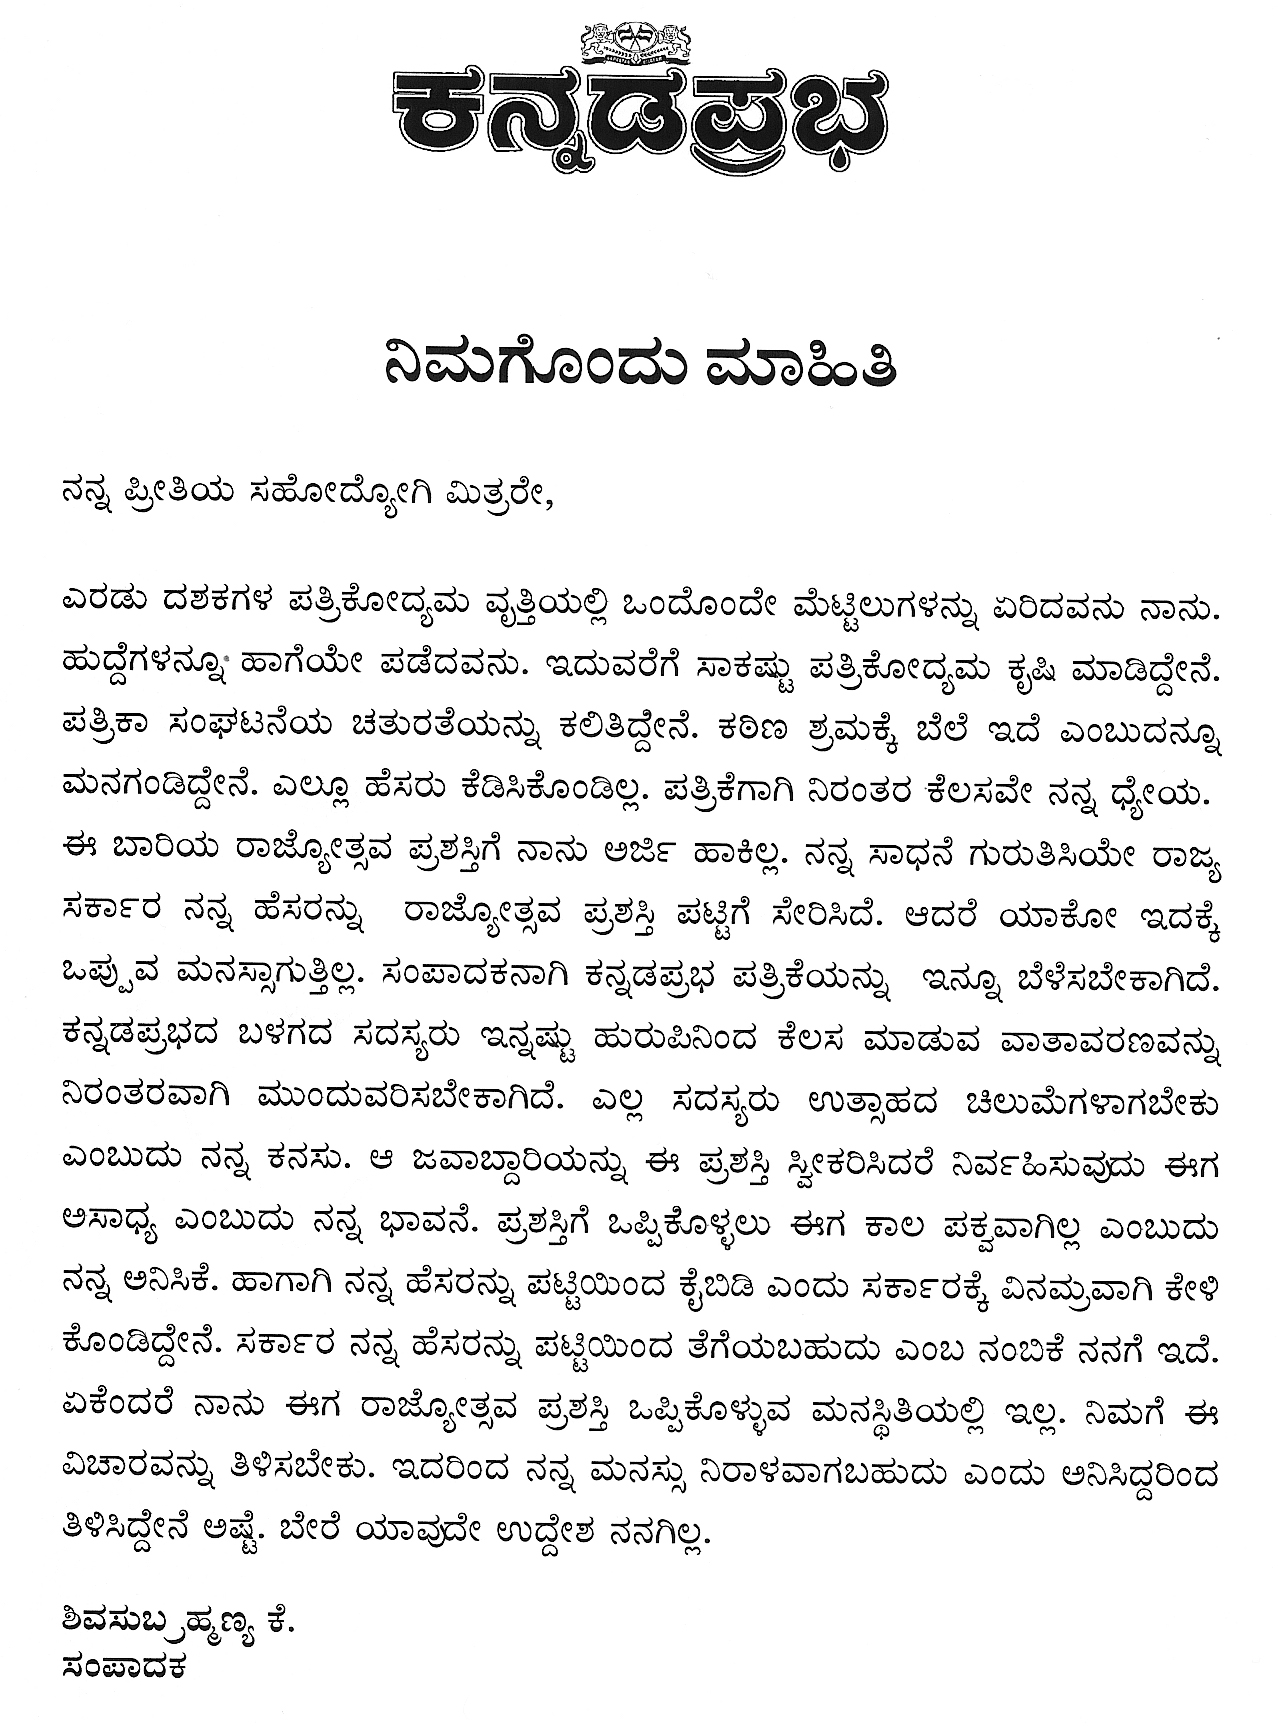 011 Essay Example Water Conservation On How To Write An About Myself Soil And Exampl Phenomenal Rainwater In Hindi Kannada Full